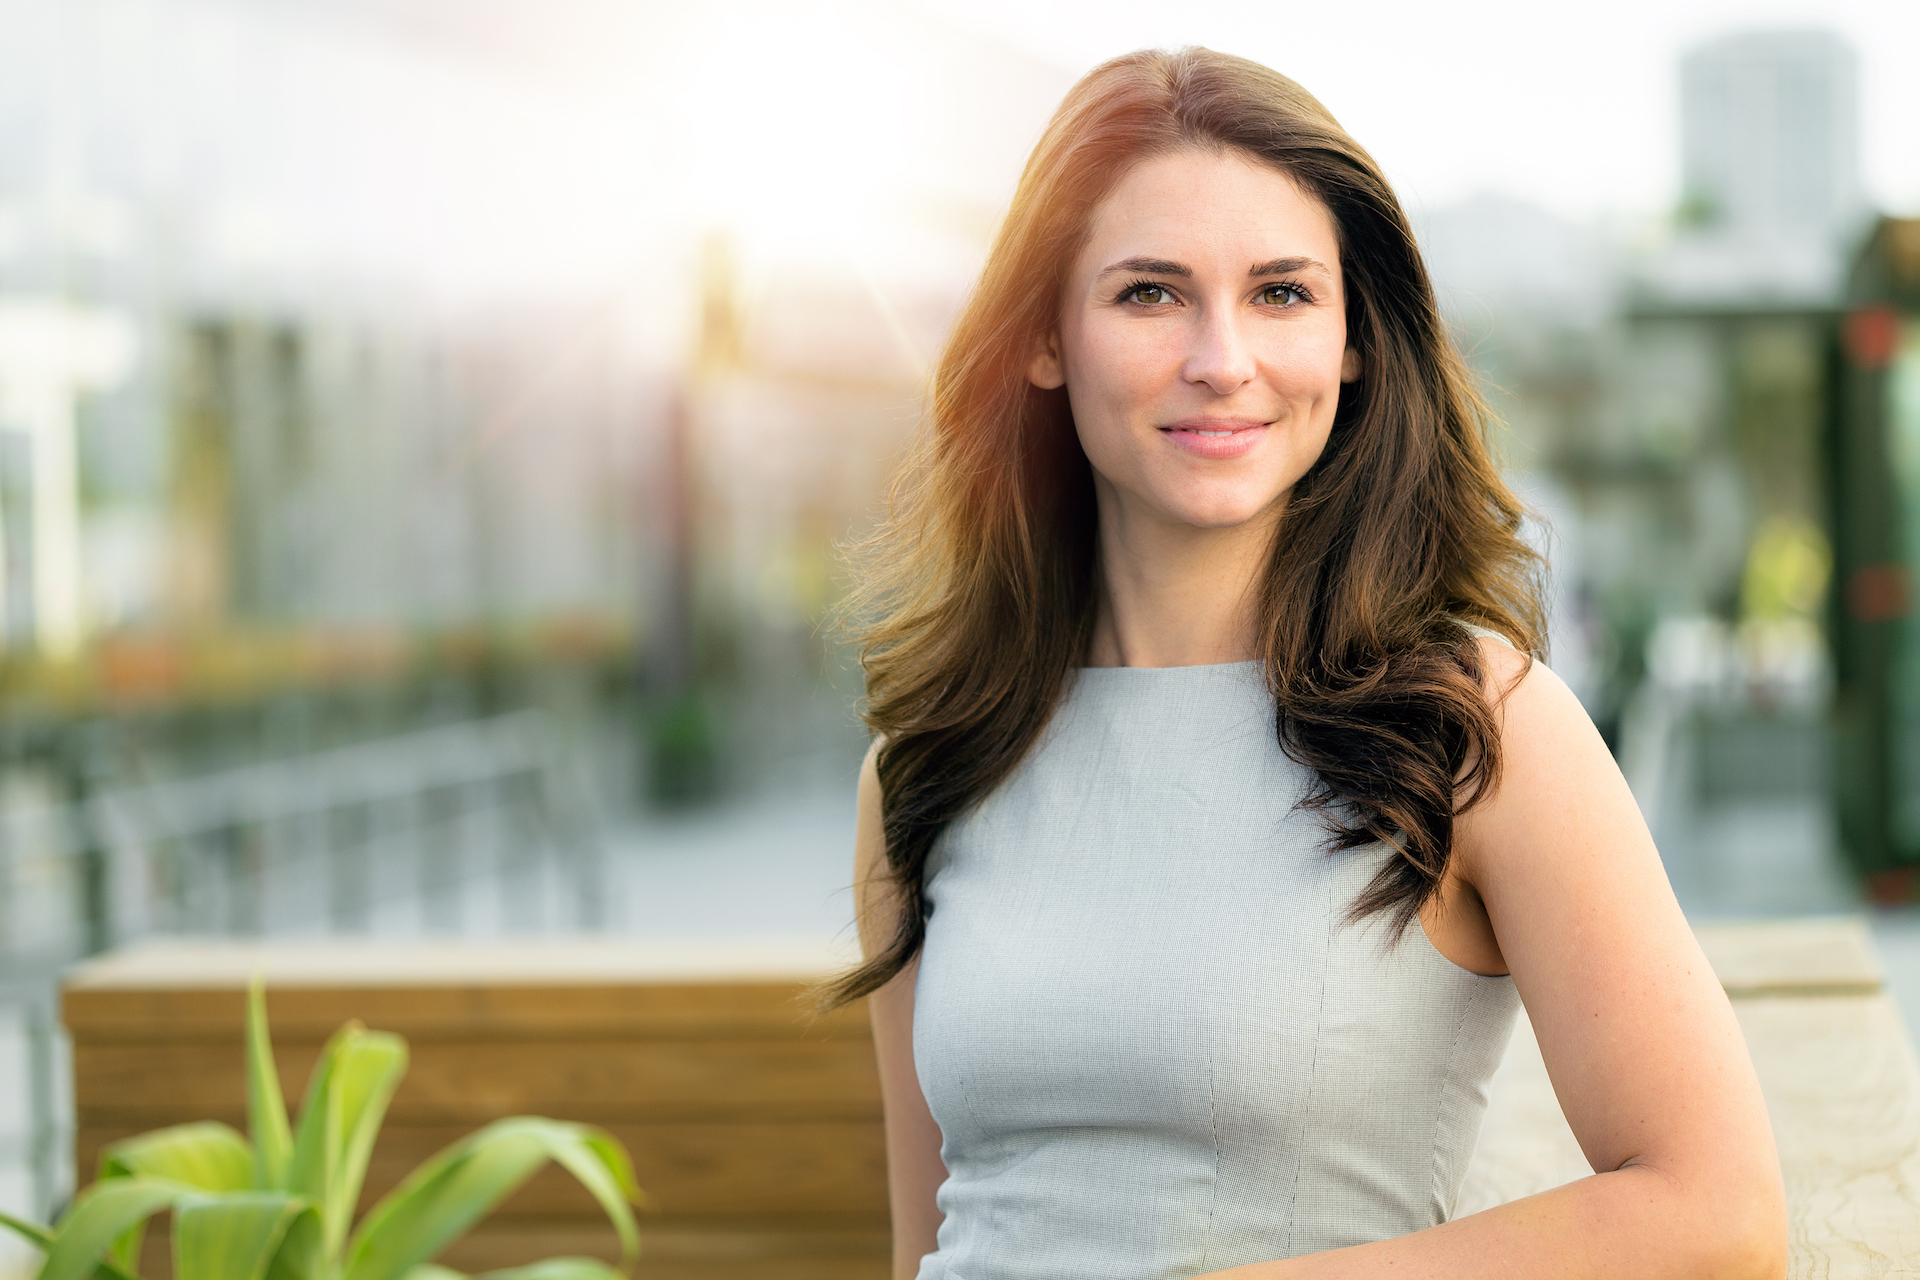 Woman with beautiful brown hair looking at the camera in front of a city